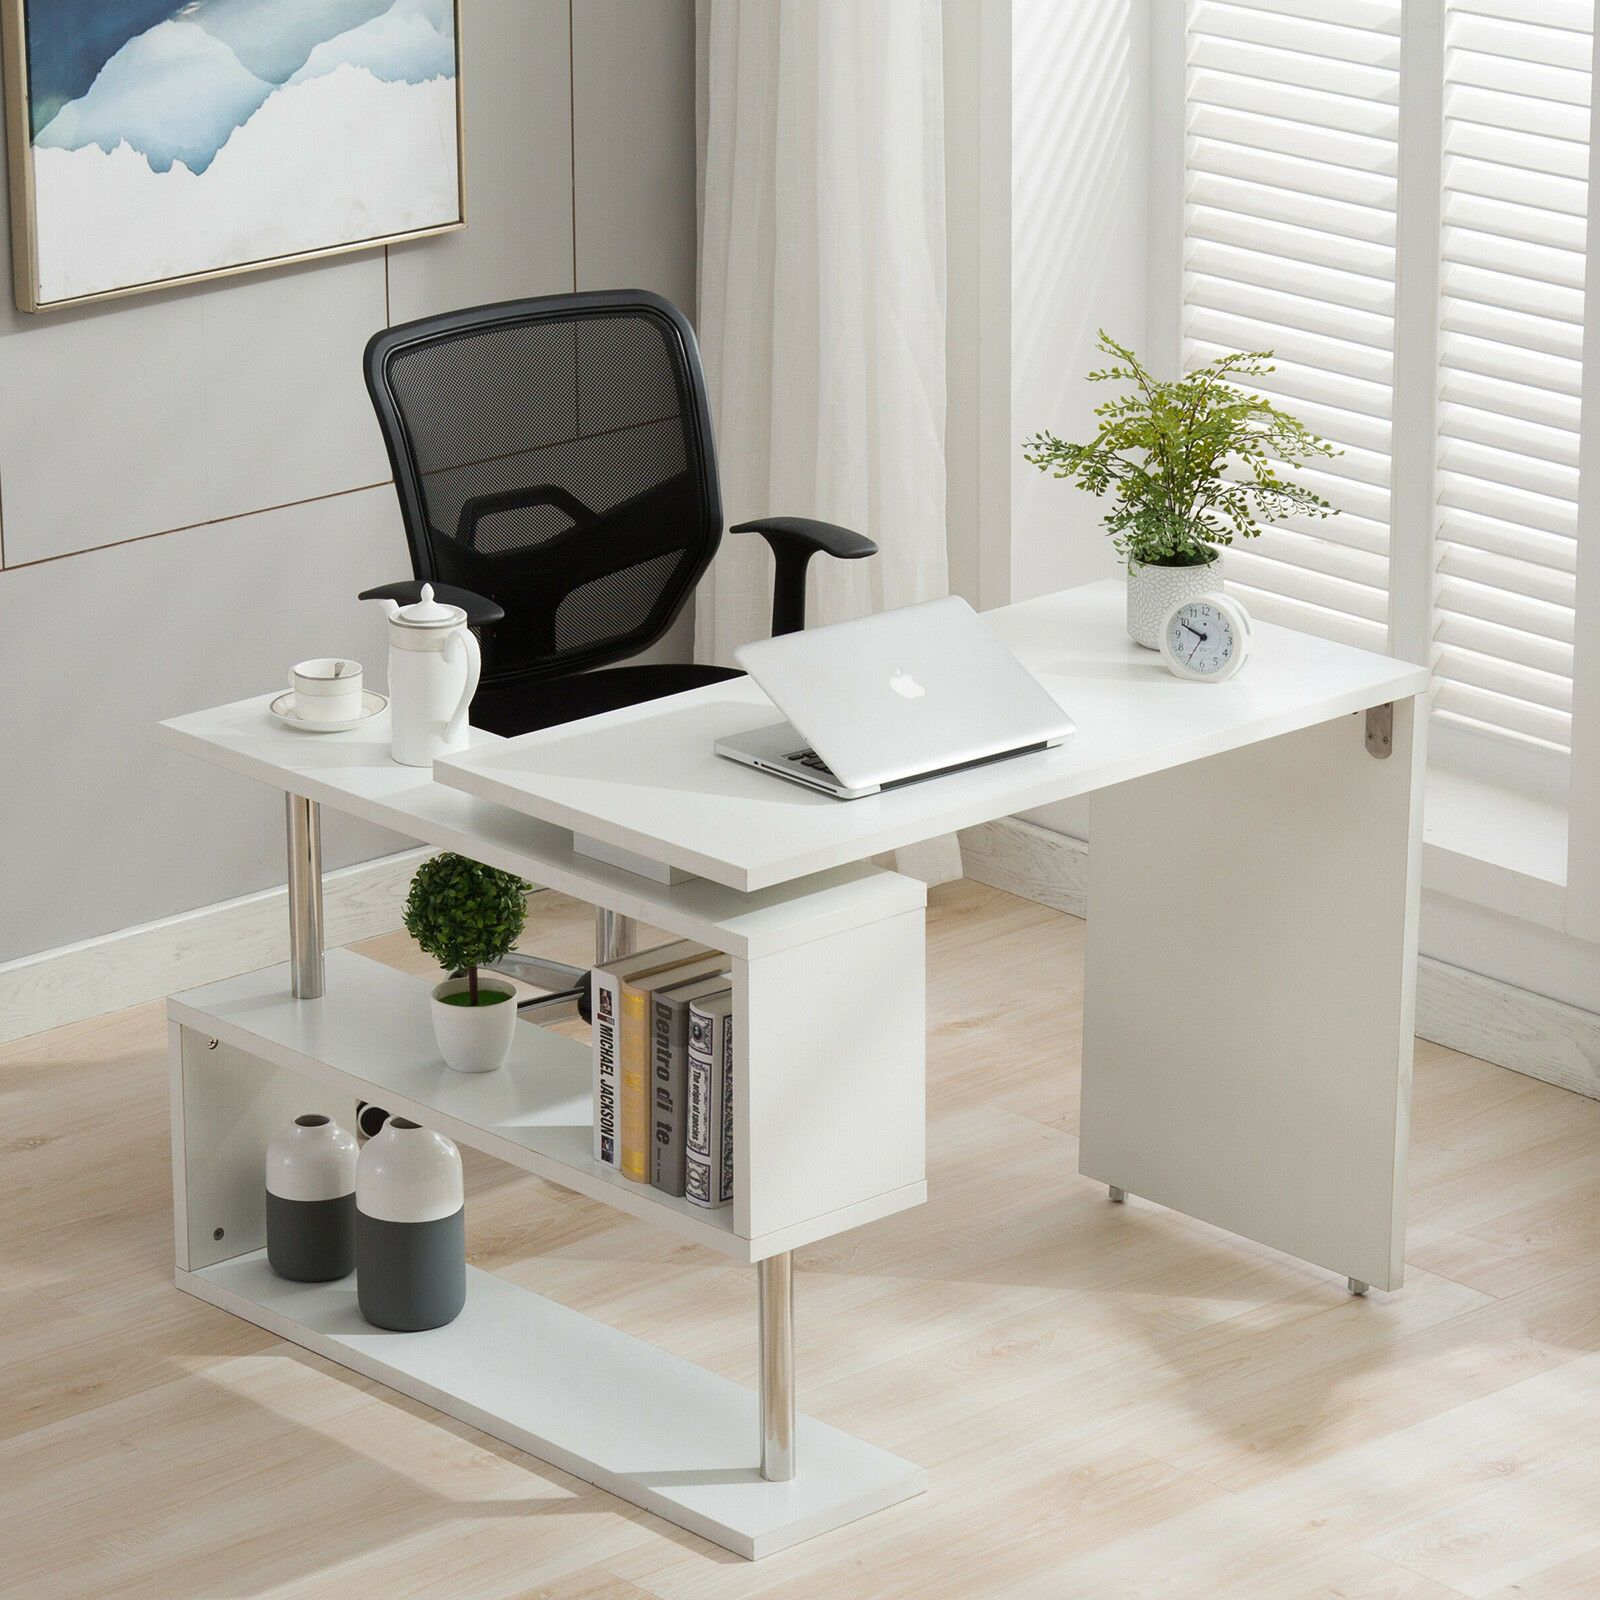 Home Office 360°Rotating CornerComputer Desk Workstation